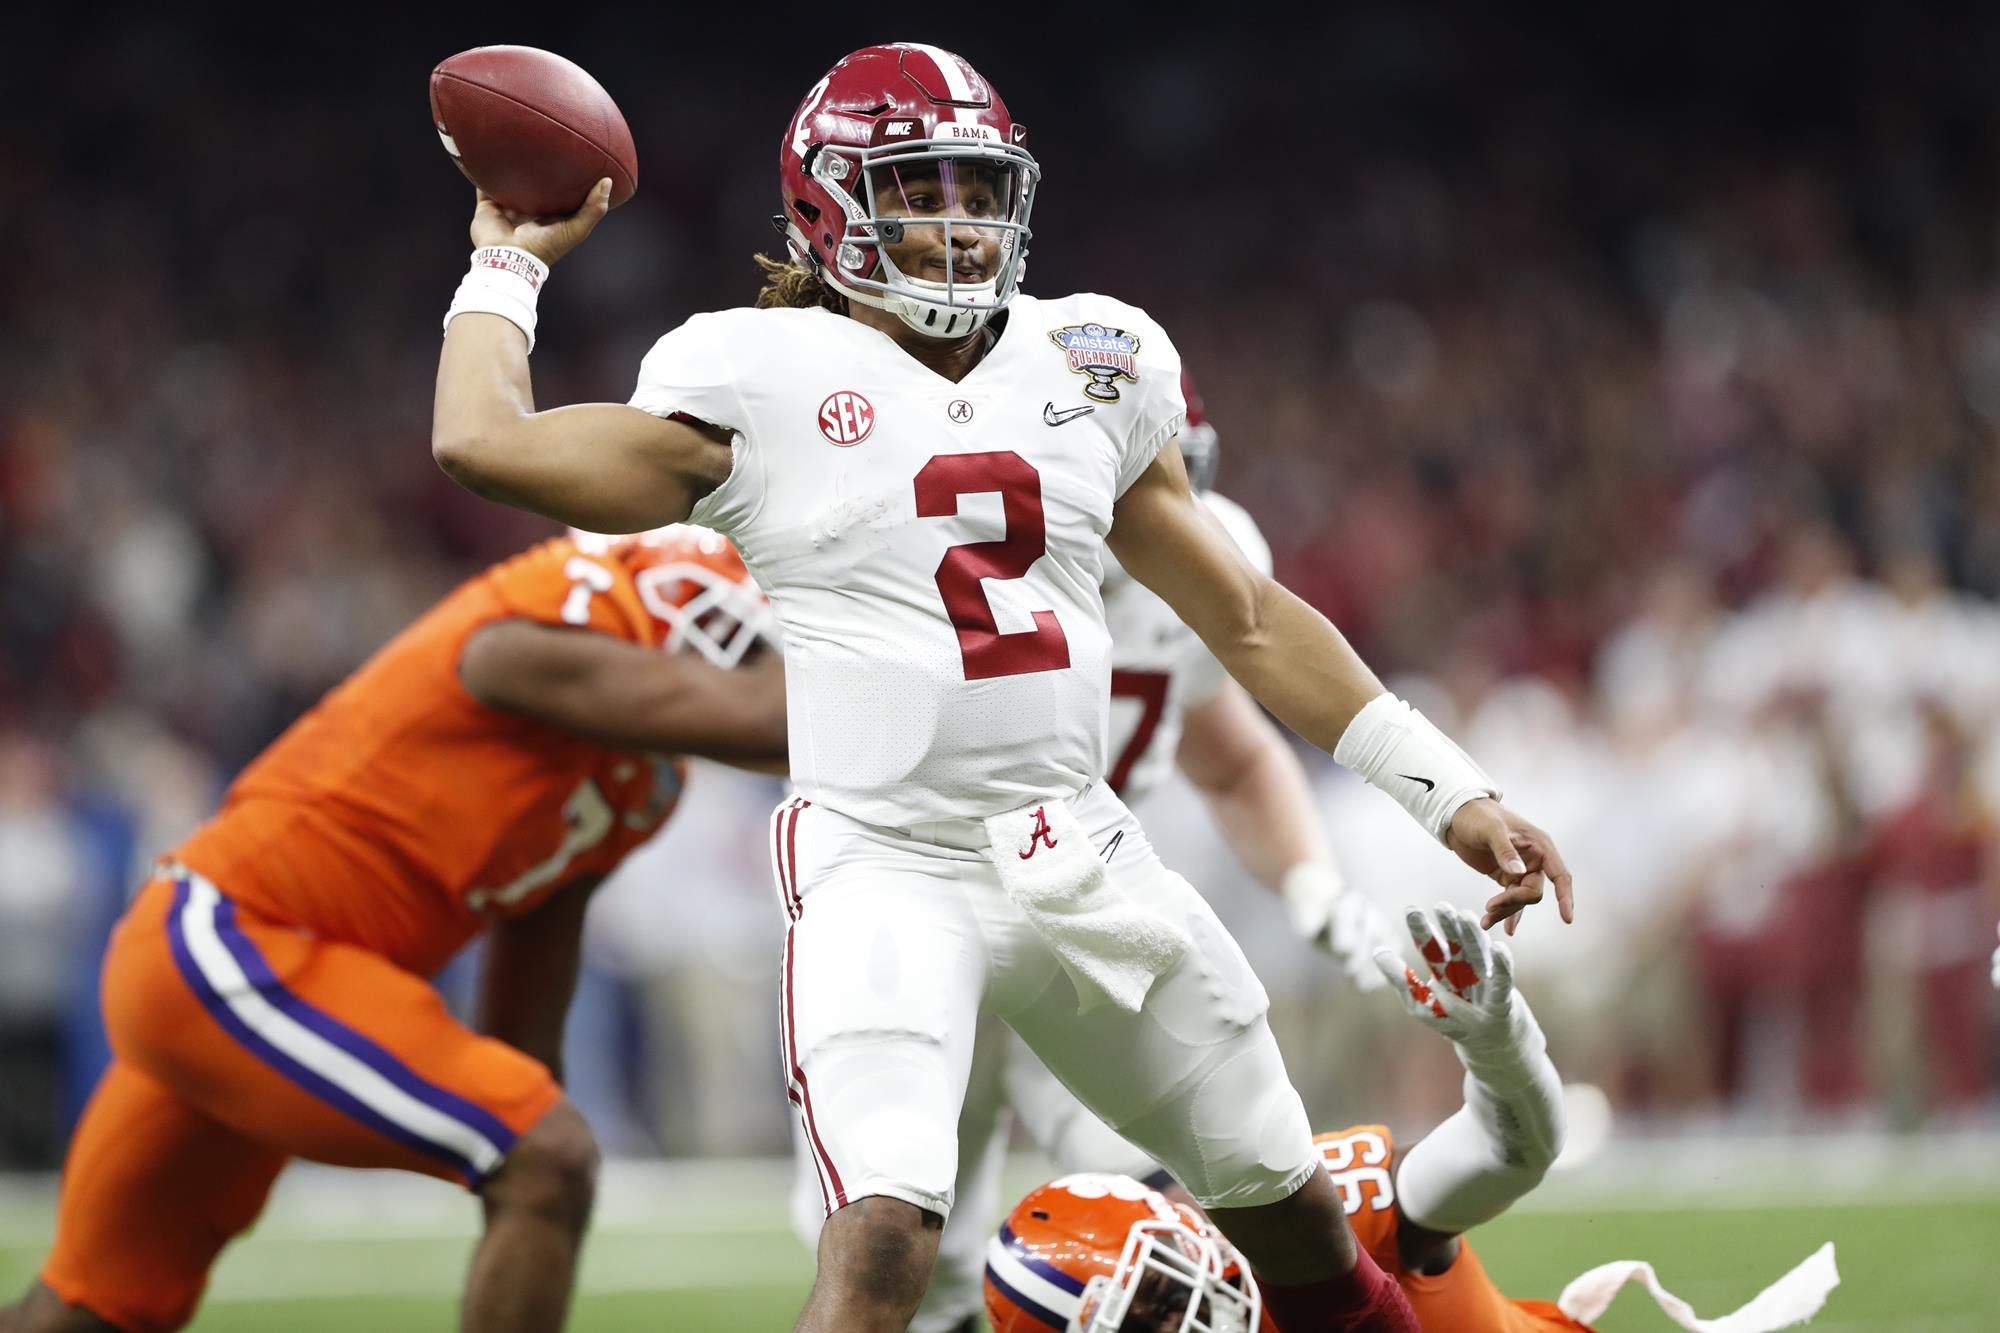 No. 4 Bama rolls No. 1 Clemson, heads to National Championship game